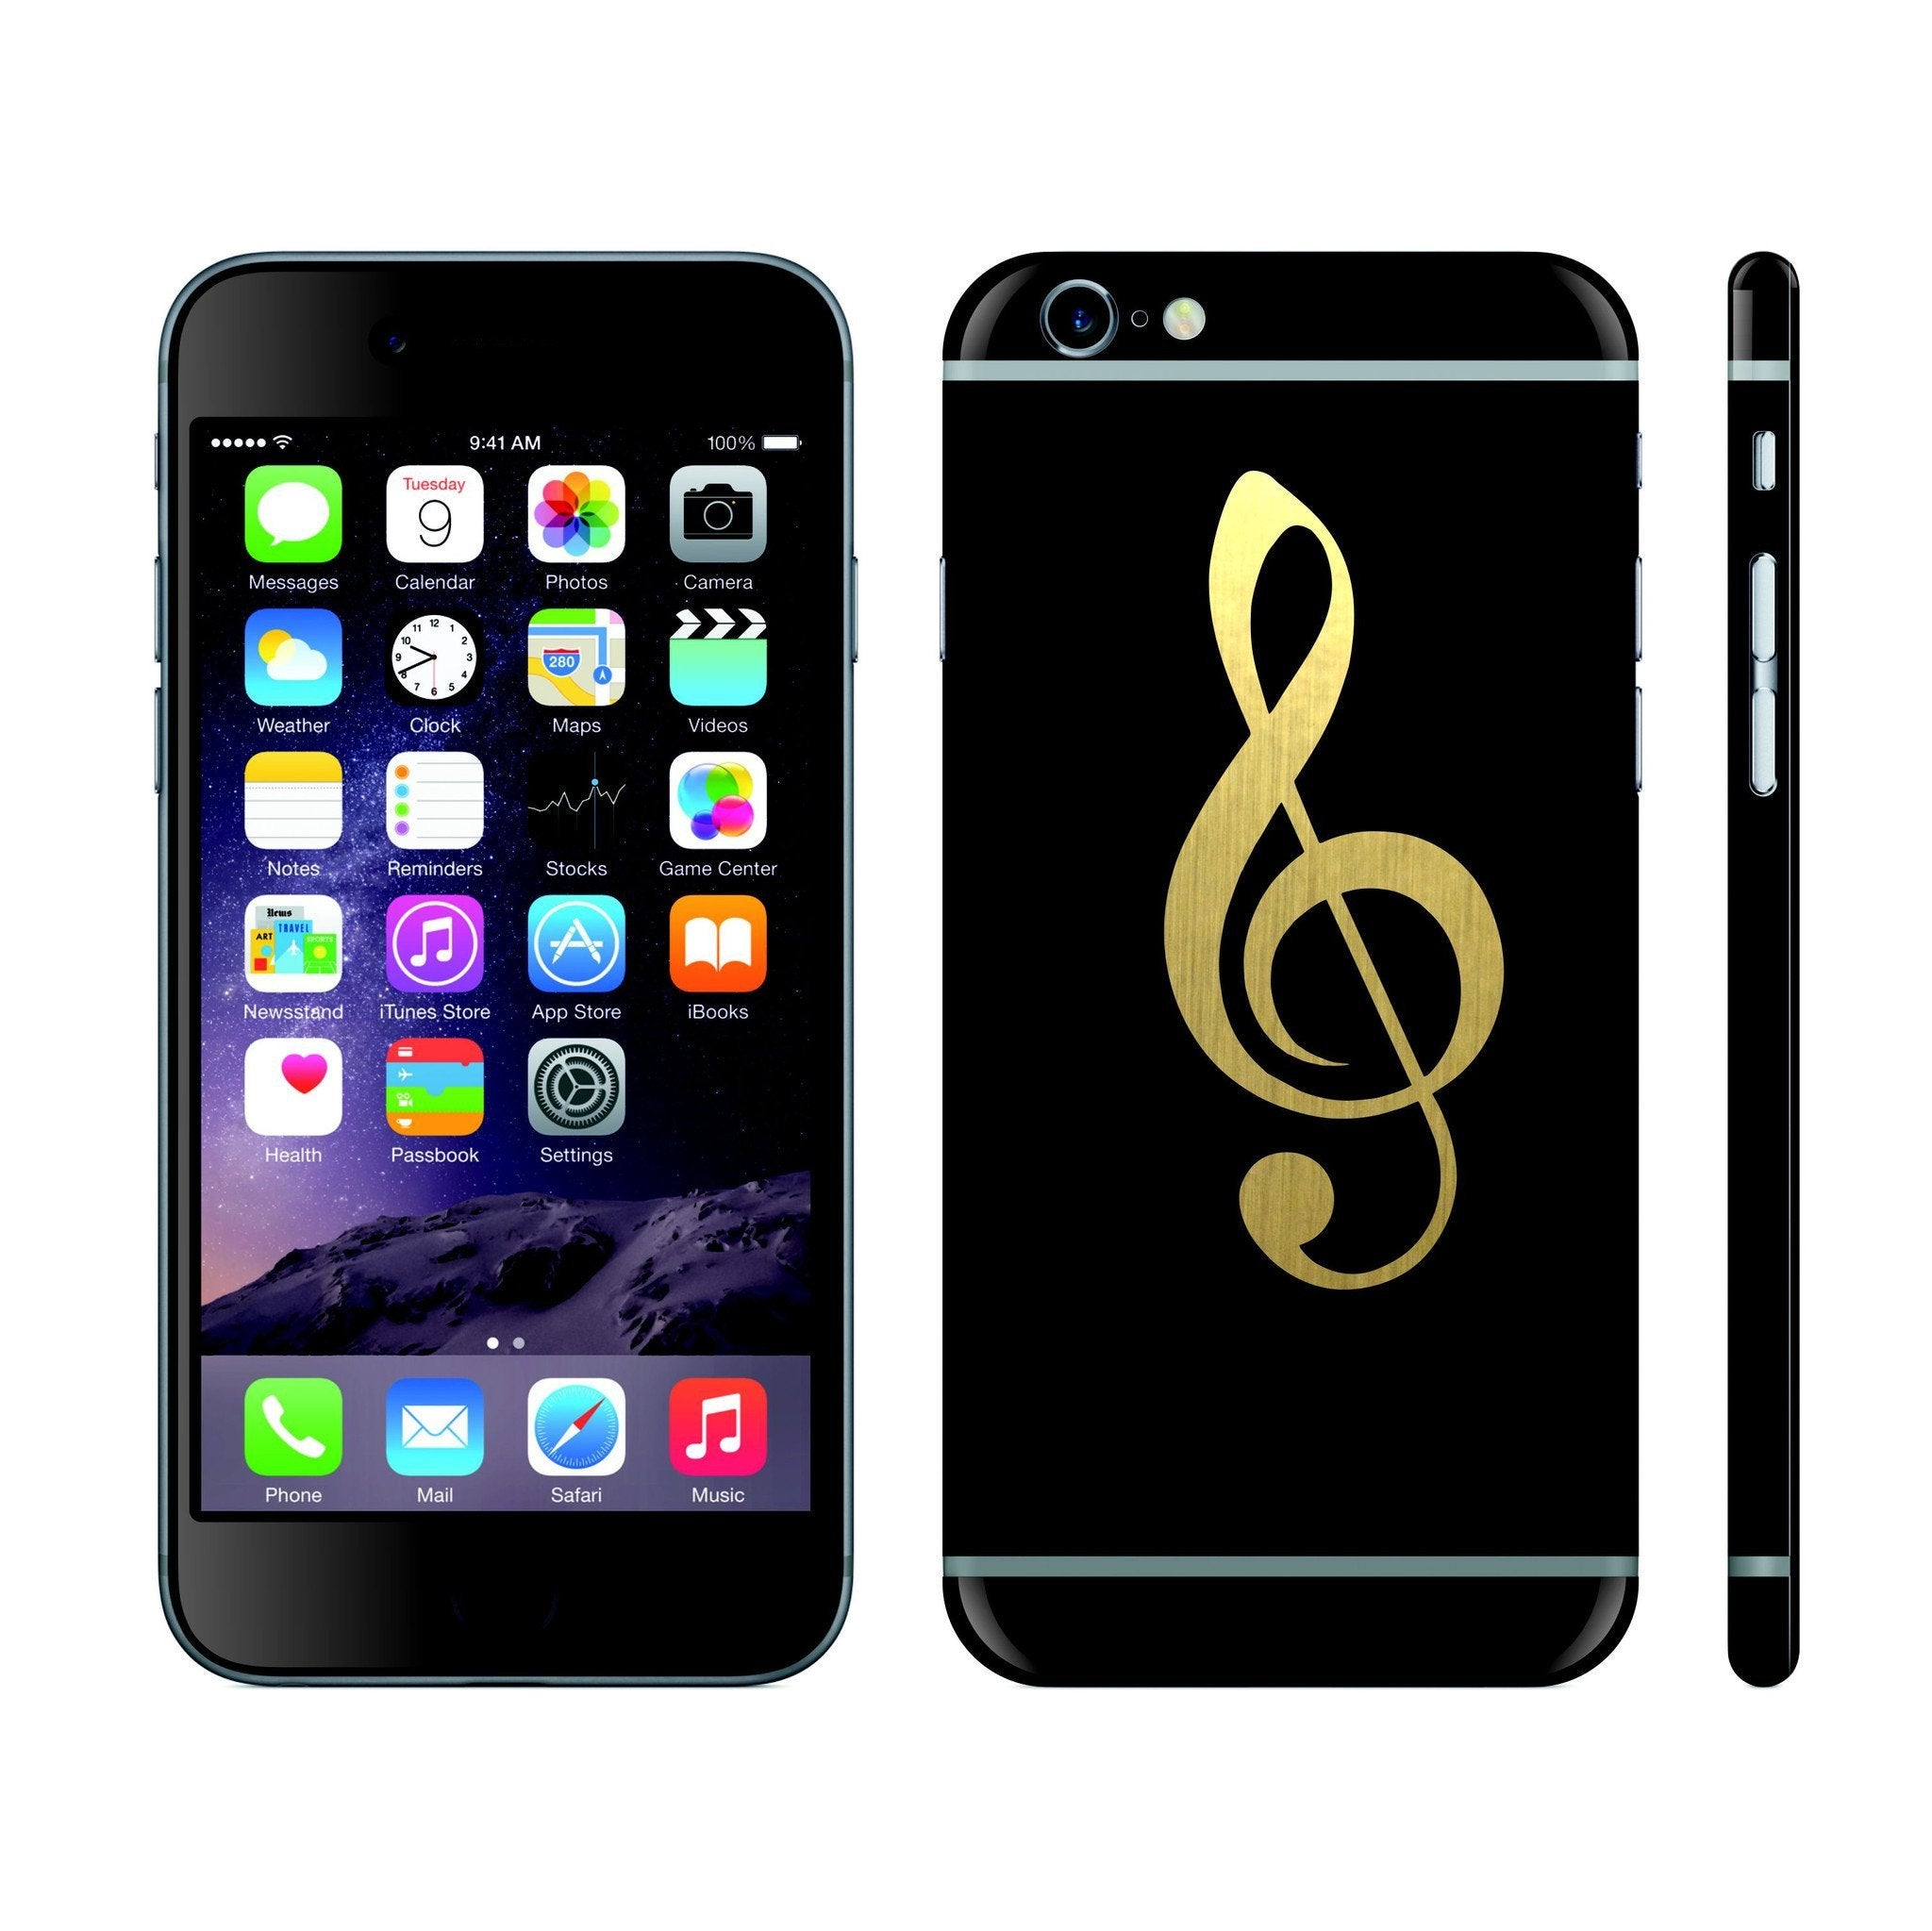 iPhone 6 PLUS Black Matt and Brushed Gold Music Custom Designs Skin Cover Decal Wrap Sticker Protector by EasySkinz